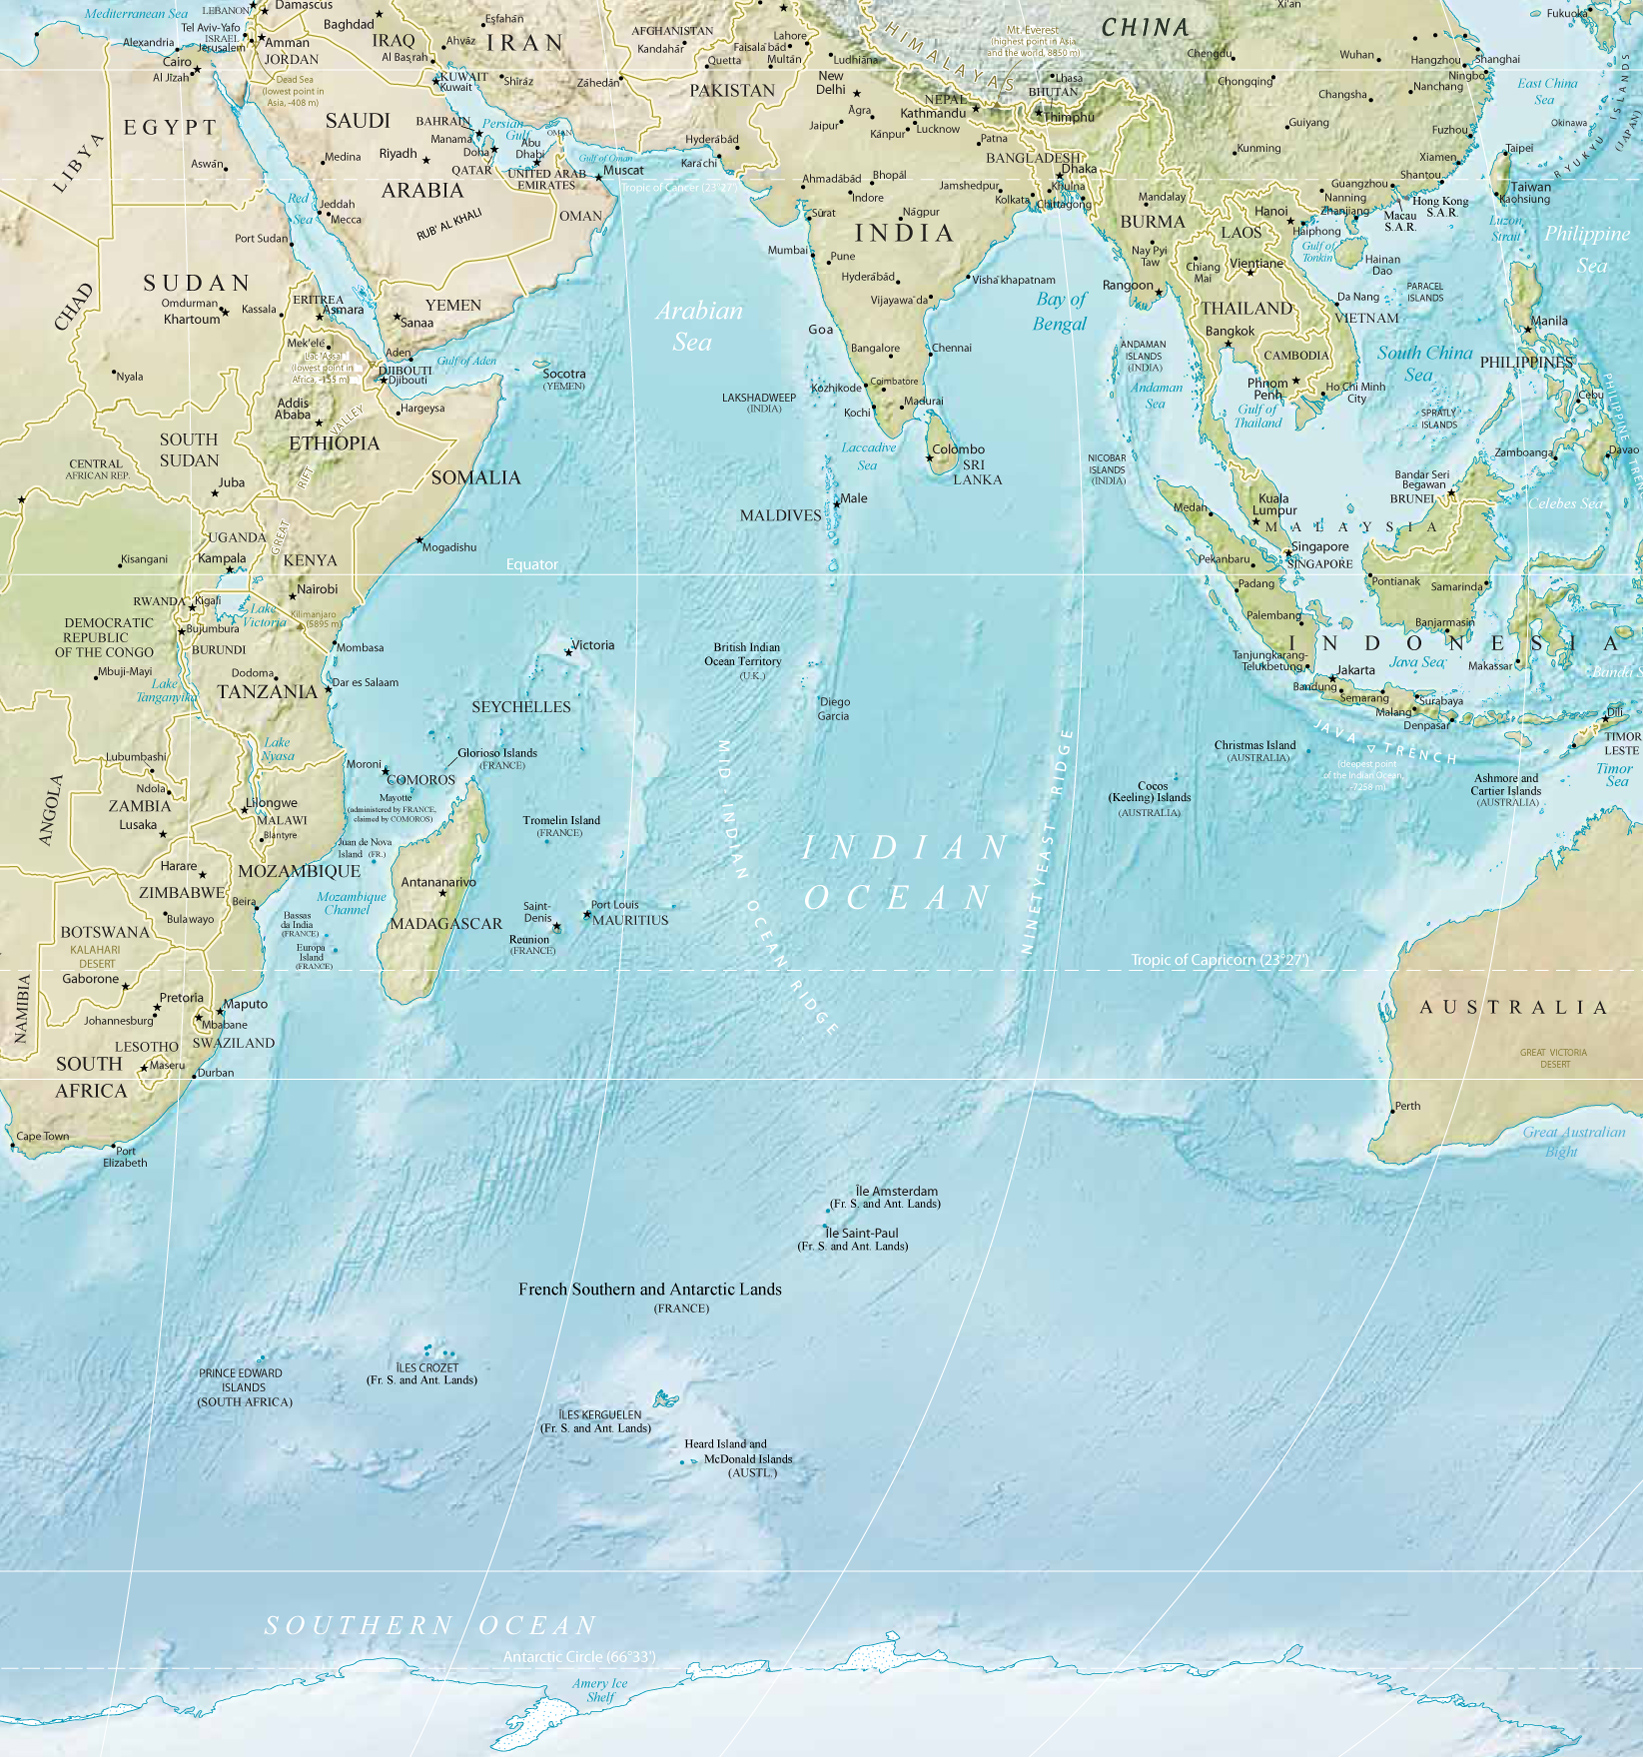 Map Of Indian Ocean Islands Countries - Mauritius location in world map